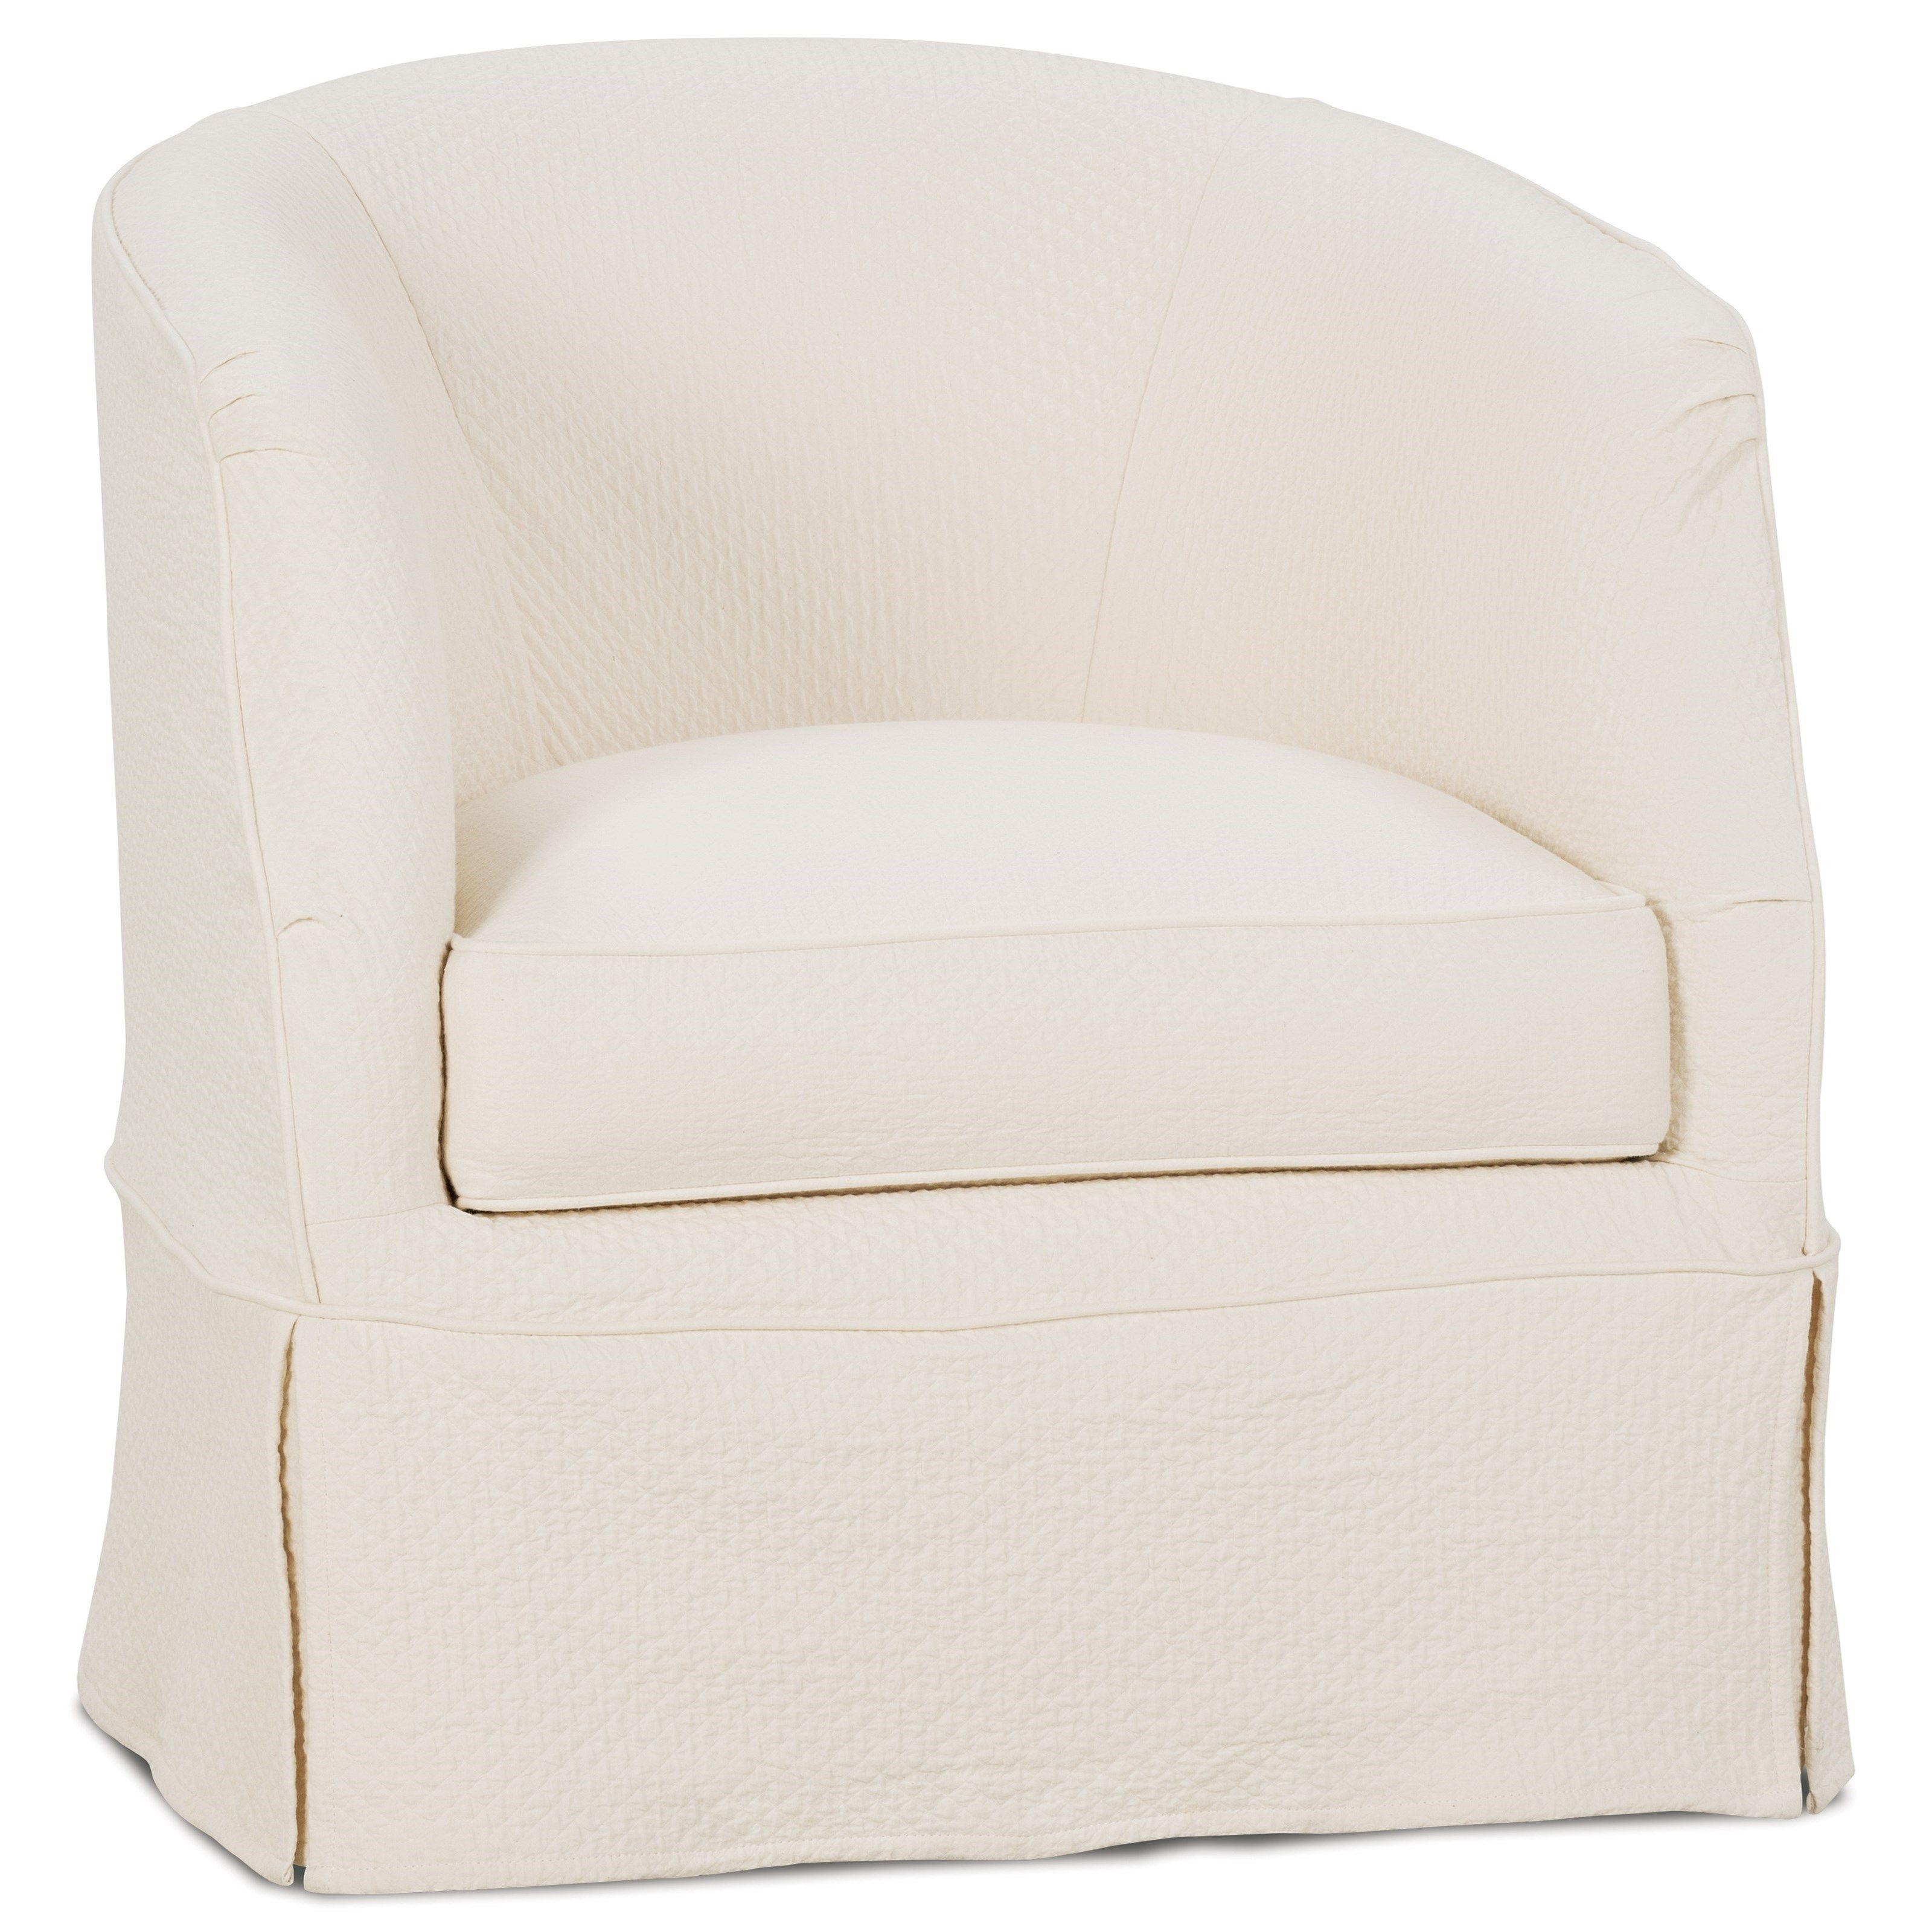 Amazing Ava Traditional Swivel Chair With Slipcover By Rowe My Ncnpc Chair Design For Home Ncnpcorg